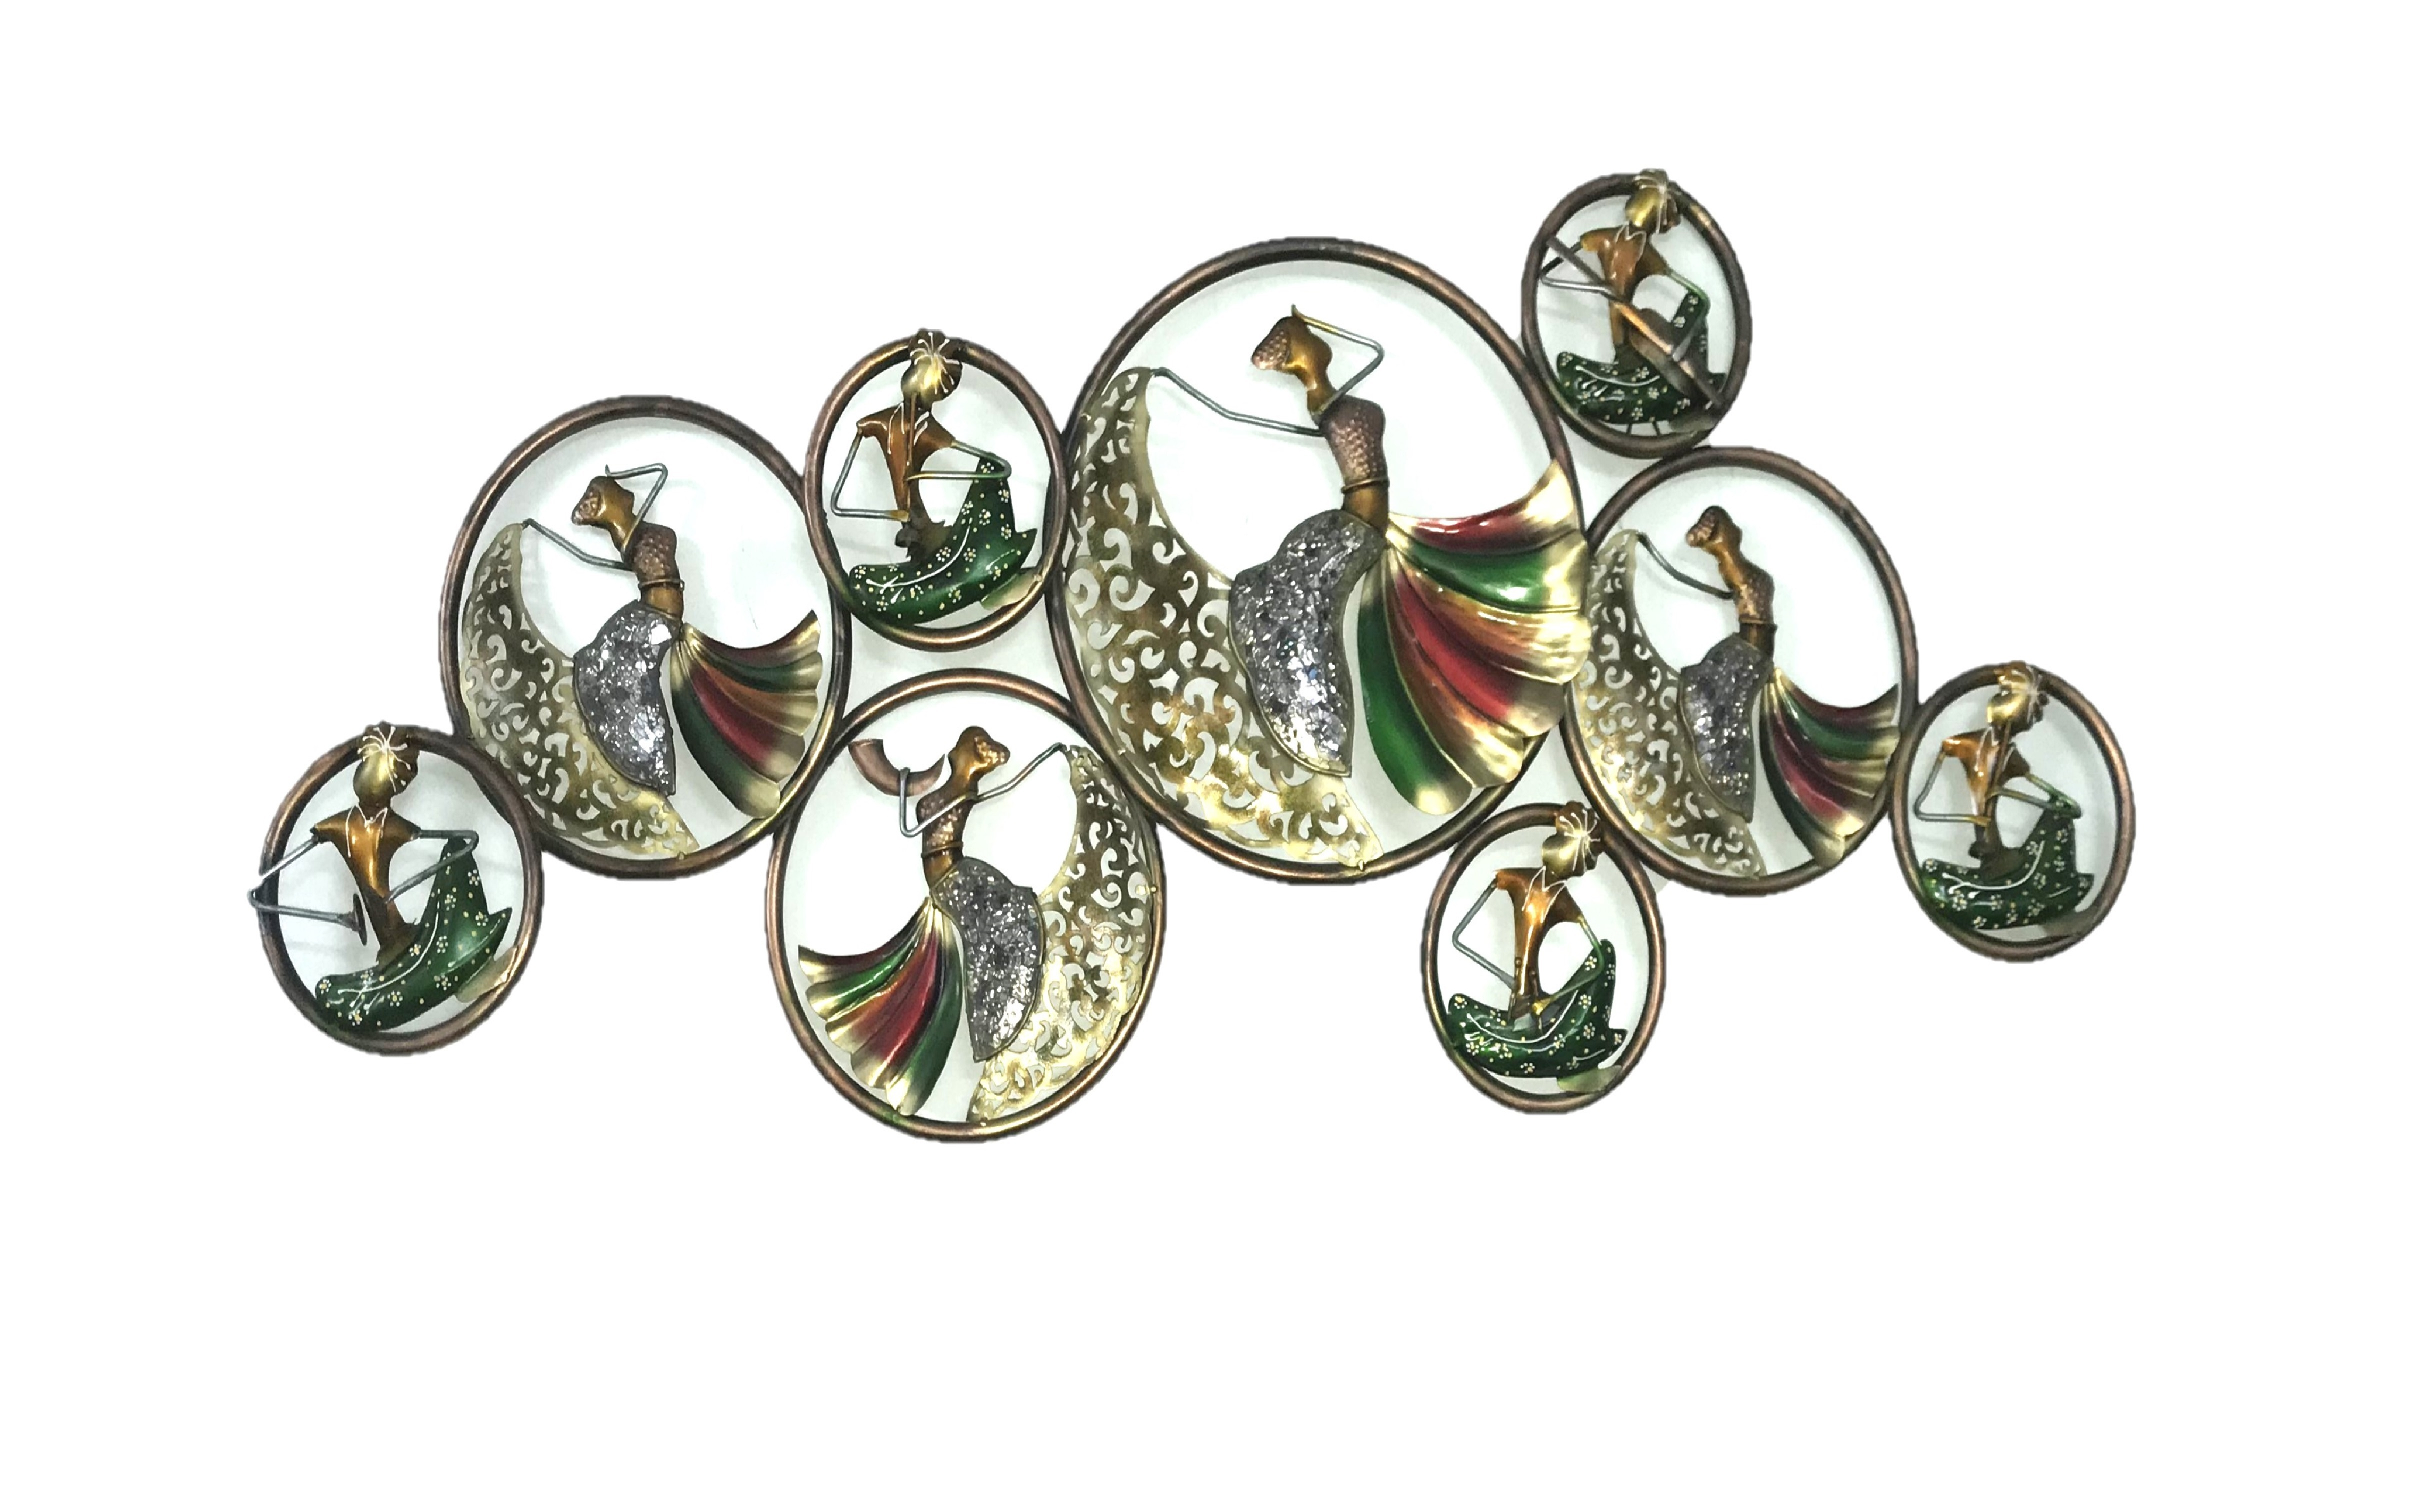 Mosaic Lady In Ring  metal wall decor